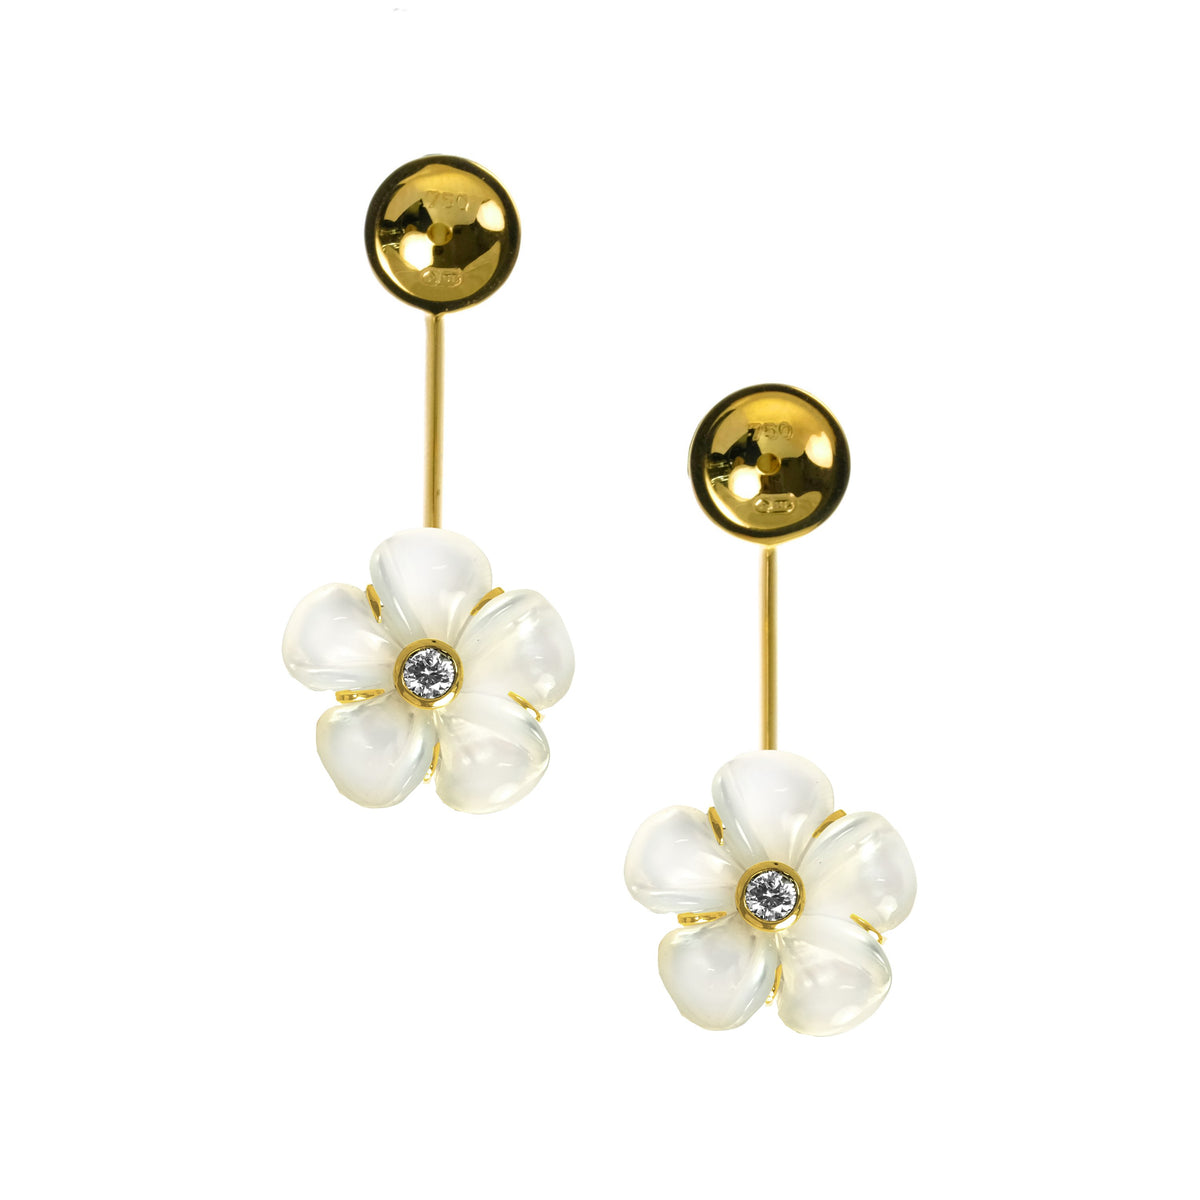 Mother of Pearl Kalachuchi Earring Lock Jacket, Small, with White Diamond (Available in yellow, white, and rose Gold)